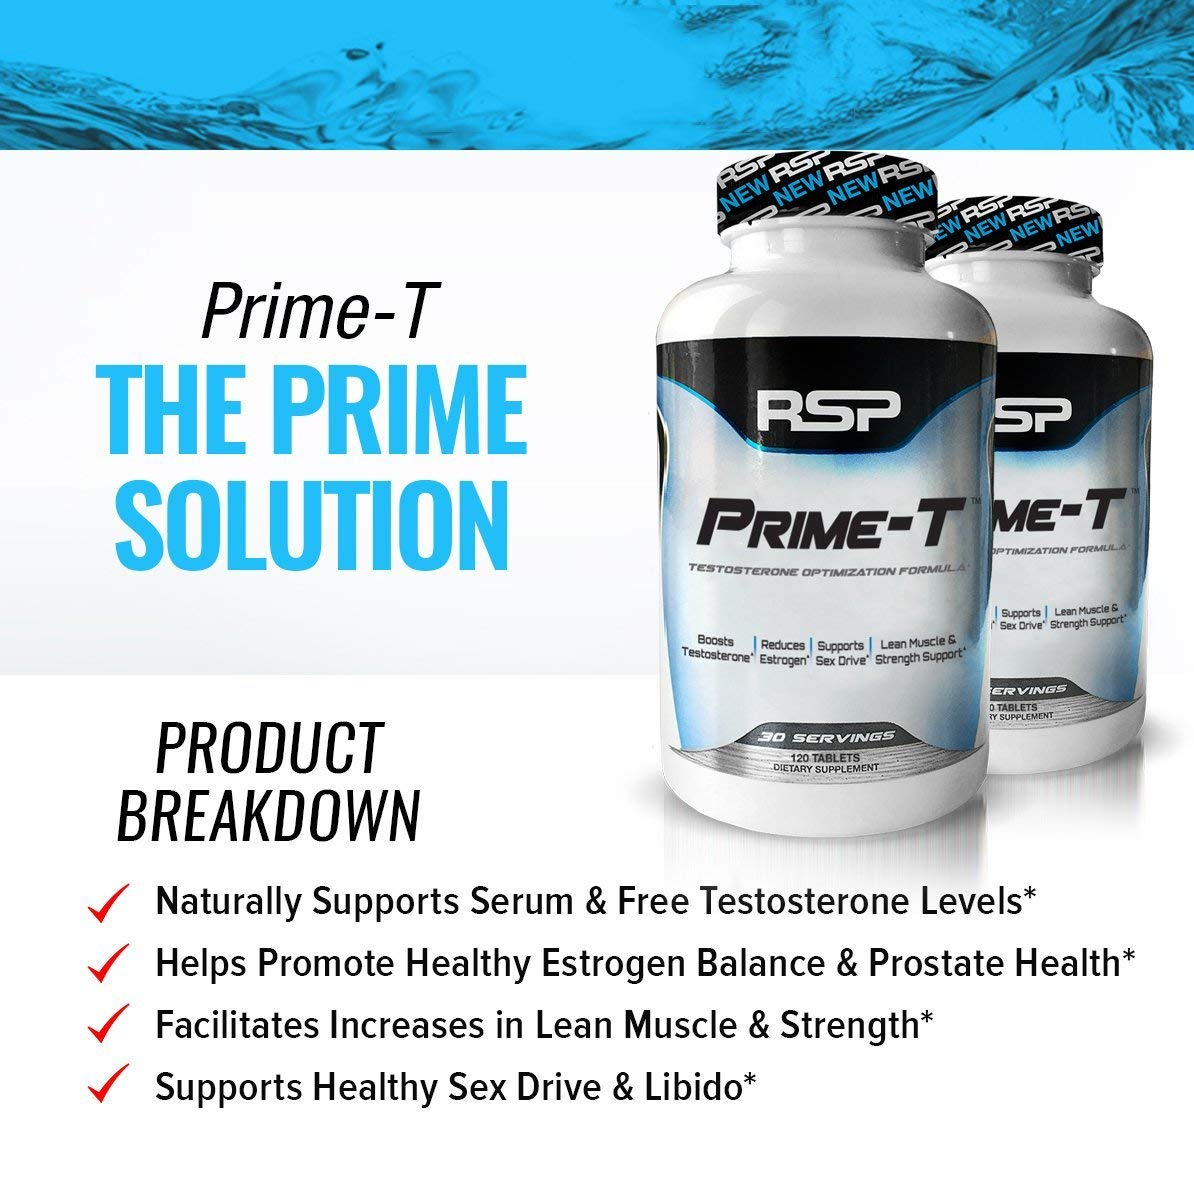 RSP Testosterone Booster for Men, Prime T Natural Test Booster Pills,  Increase Free Testosterone,